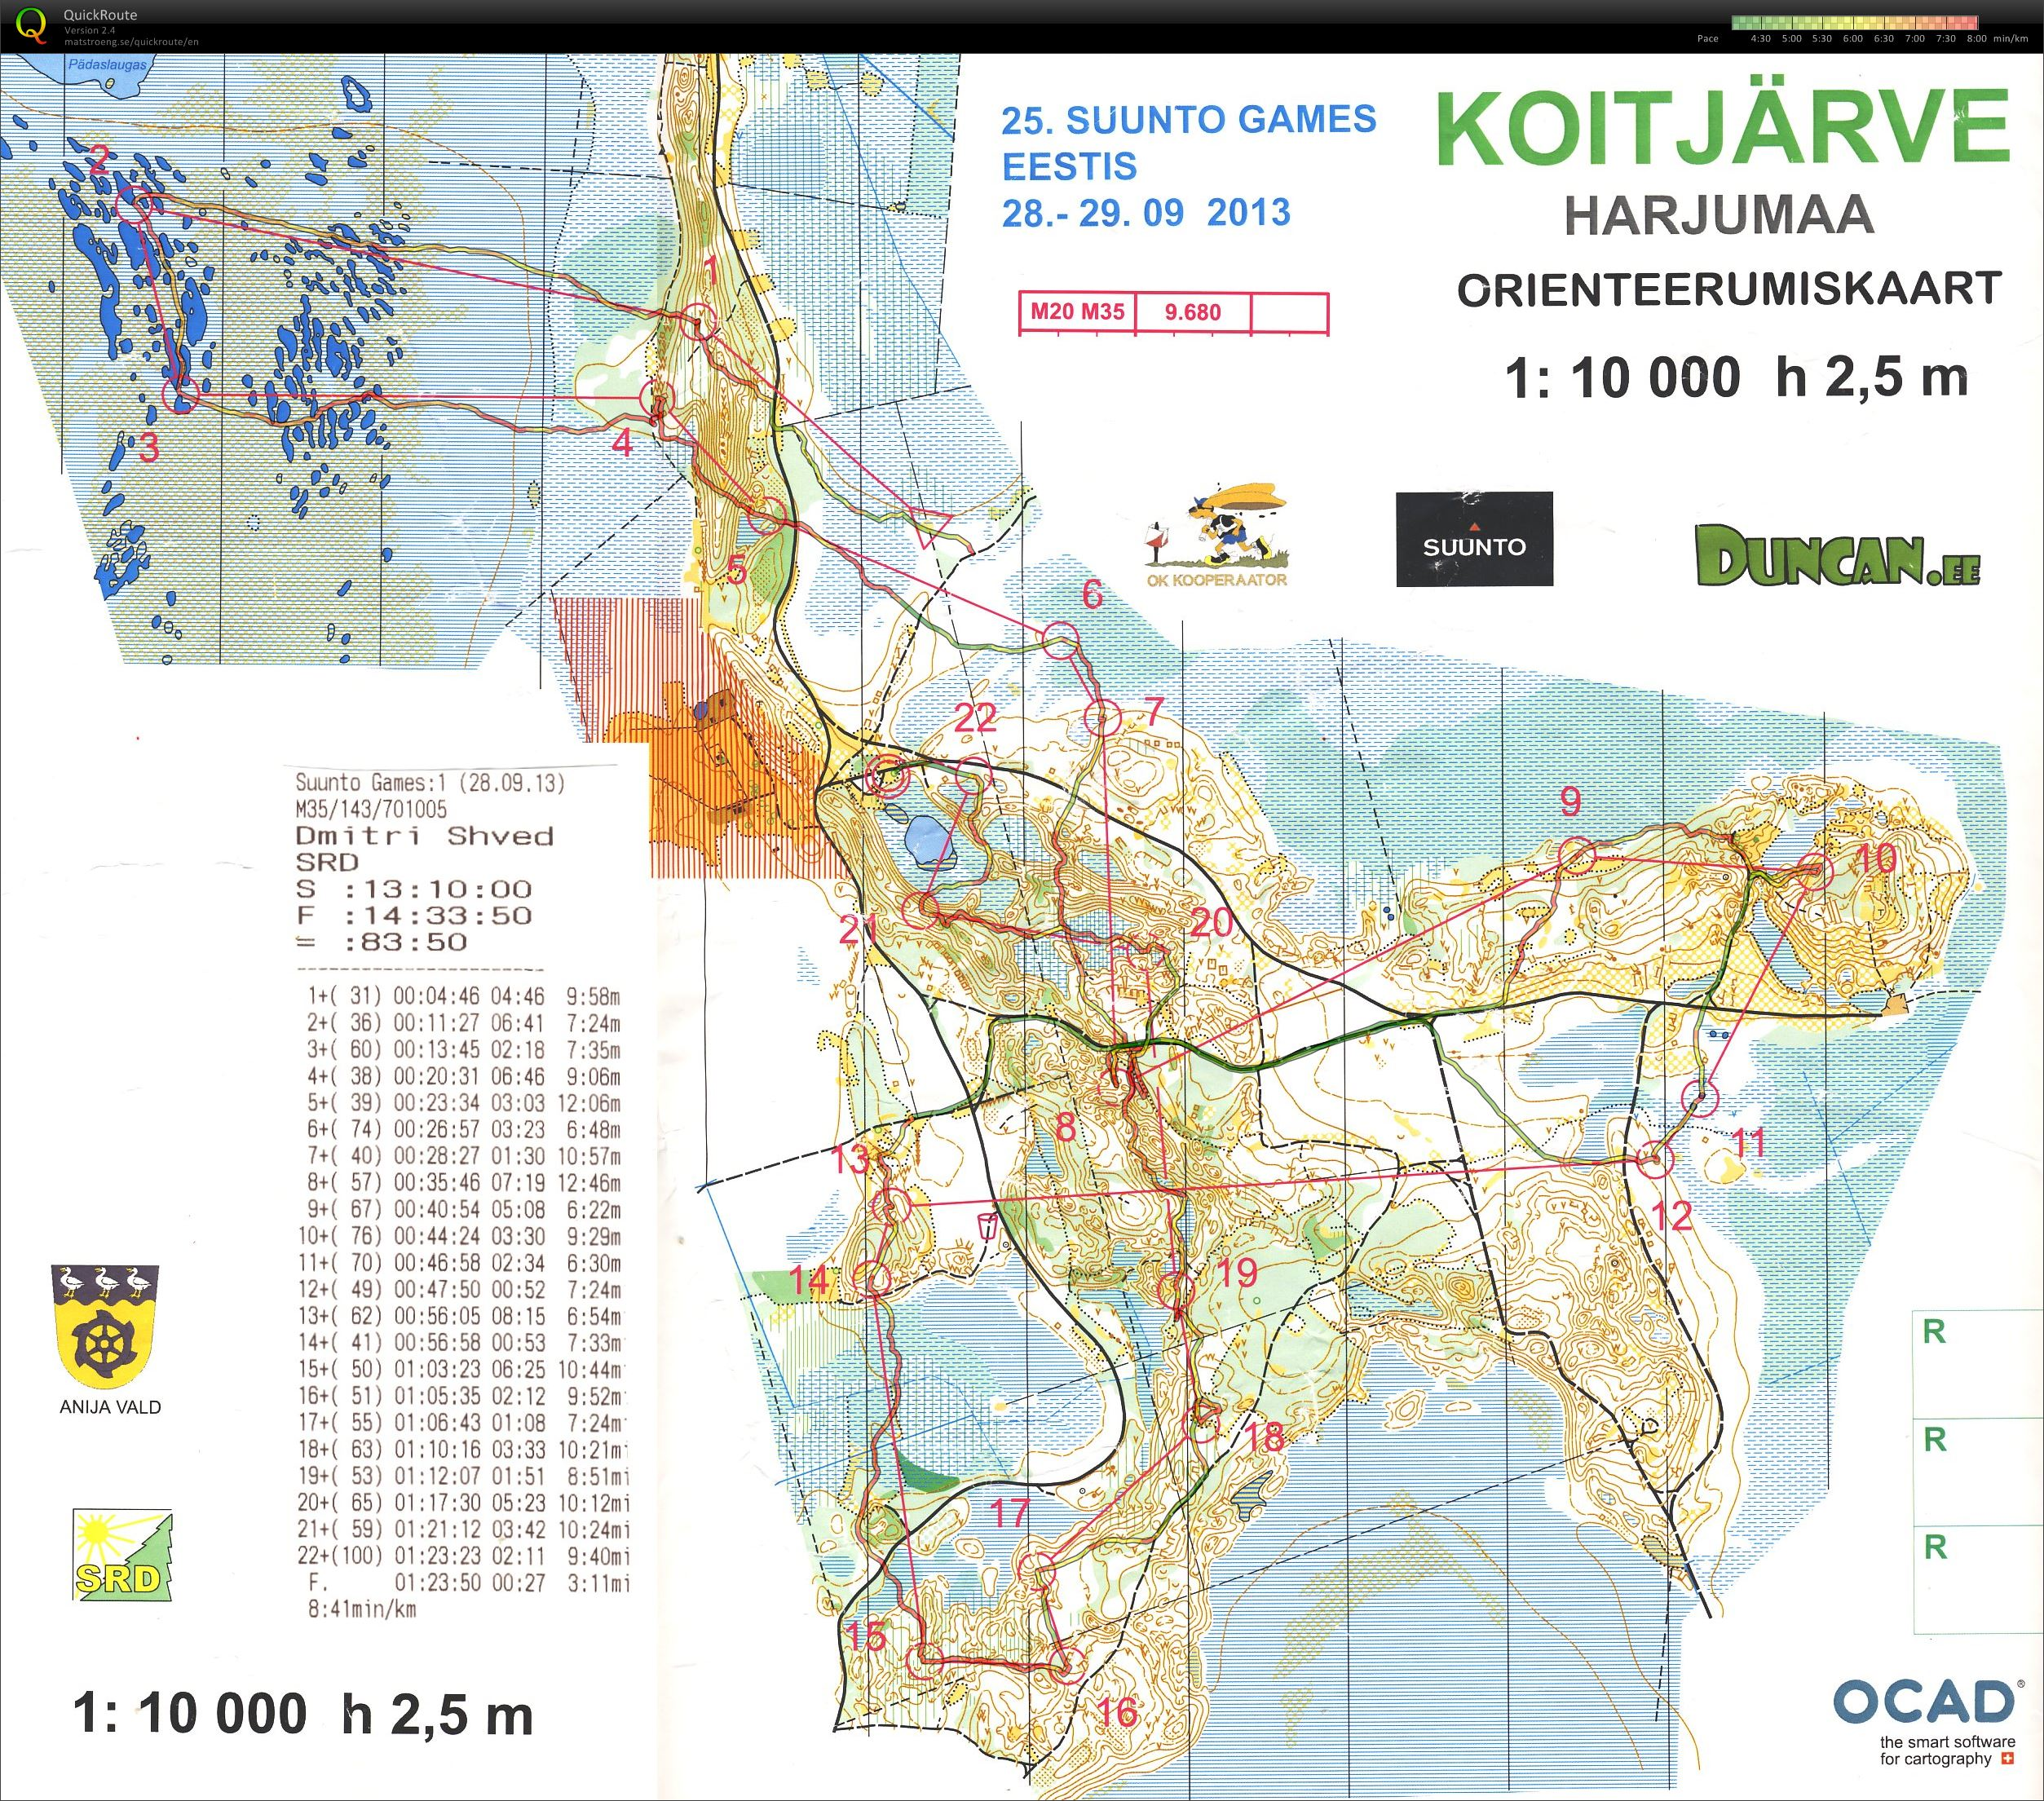 Suunto Games - Day 1 (28/09/2013)